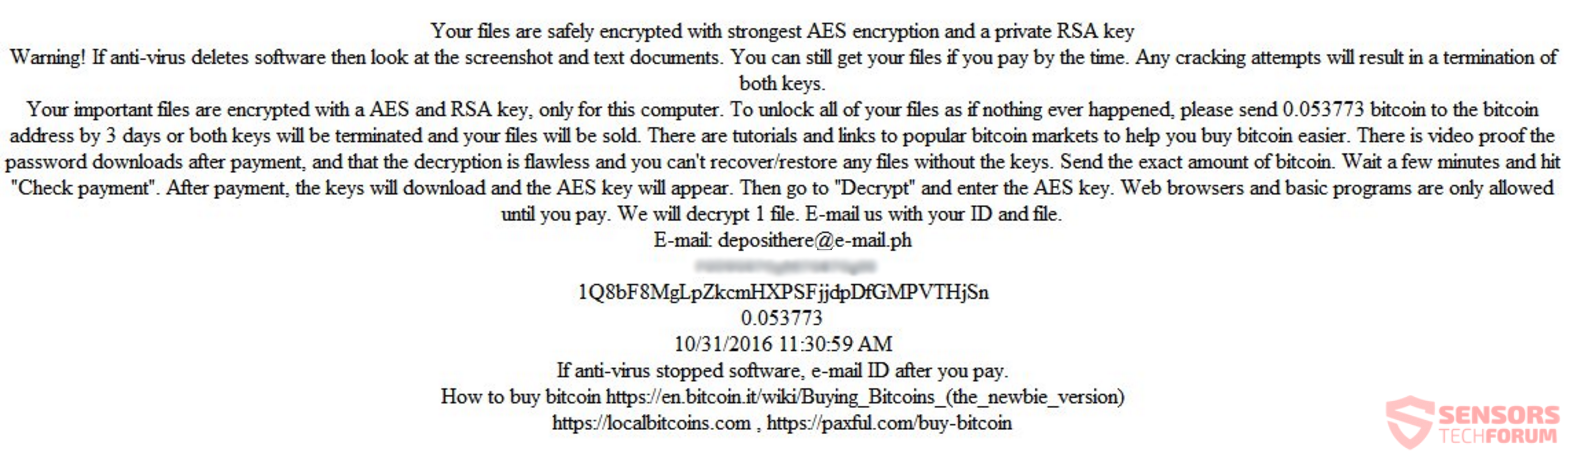 stf-encryptile-ransomware-deposithere-e-mail-ph-ransom-note